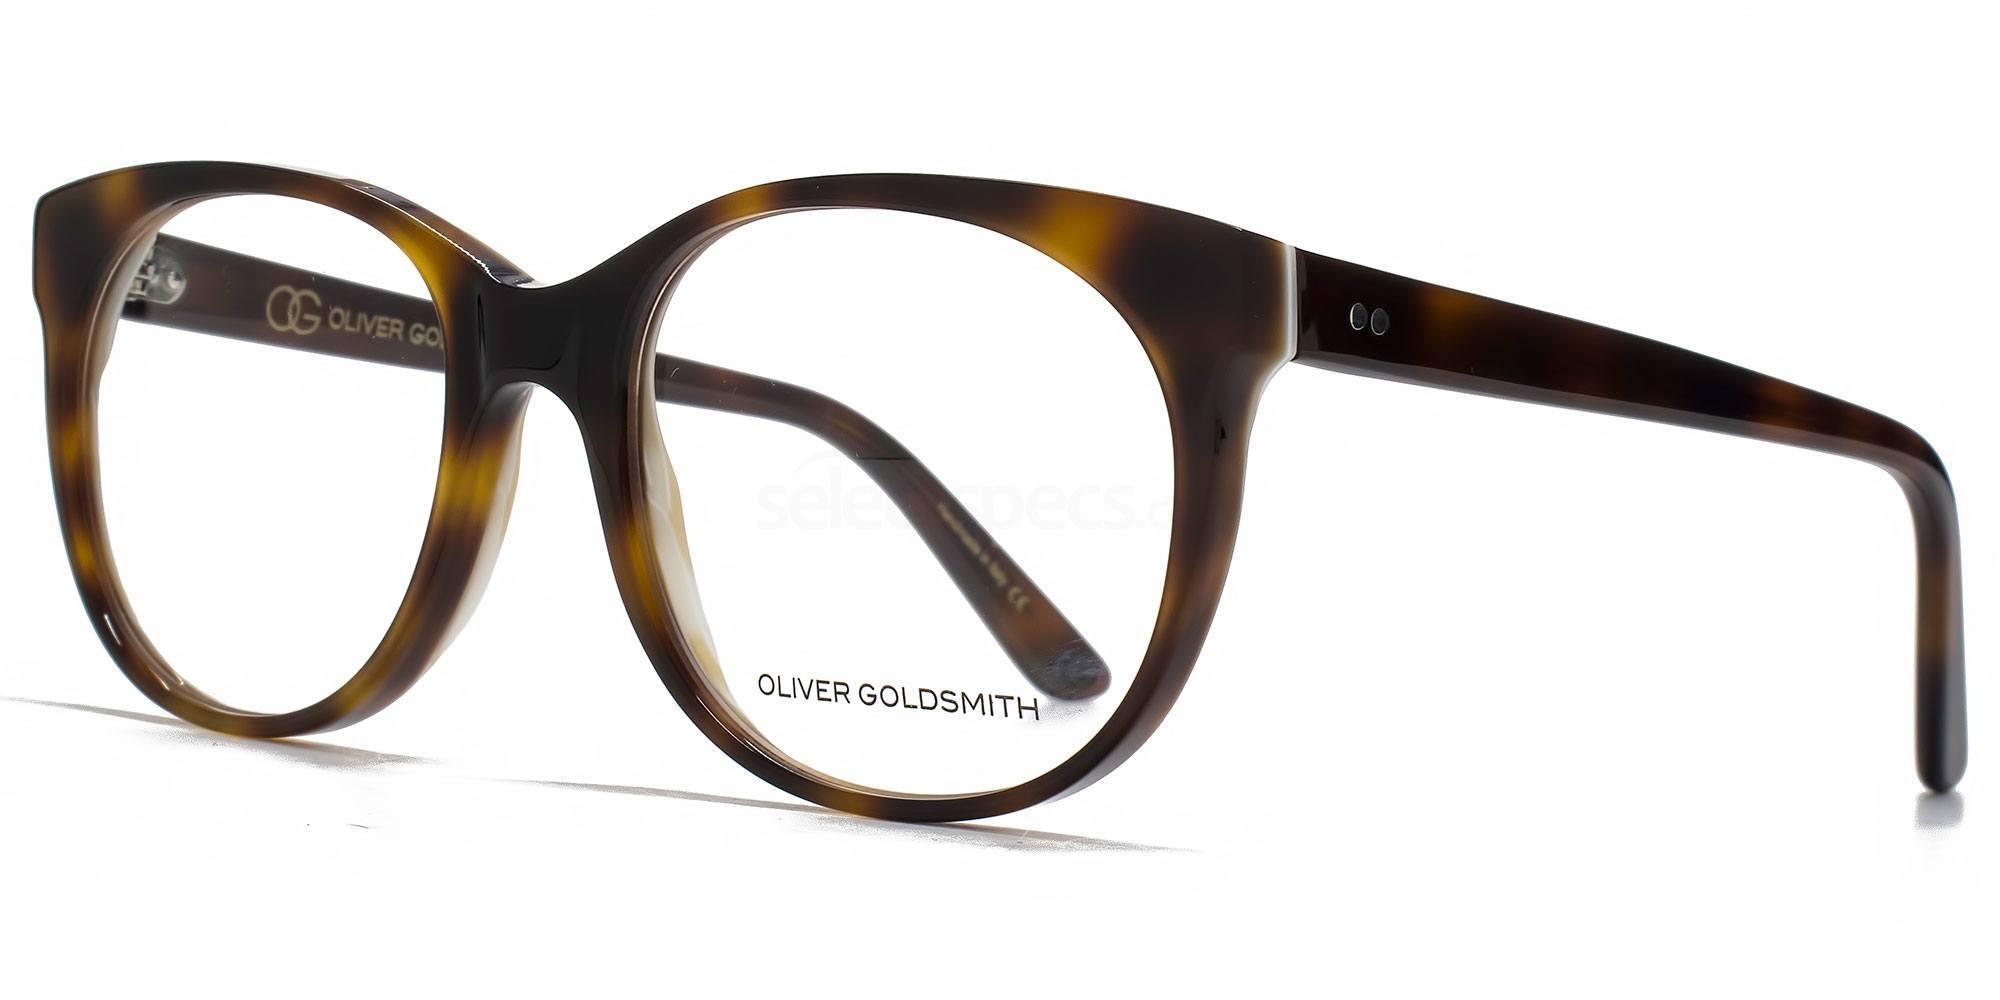 01 OLI014 - HELLY Glasses, Oliver Goldsmith